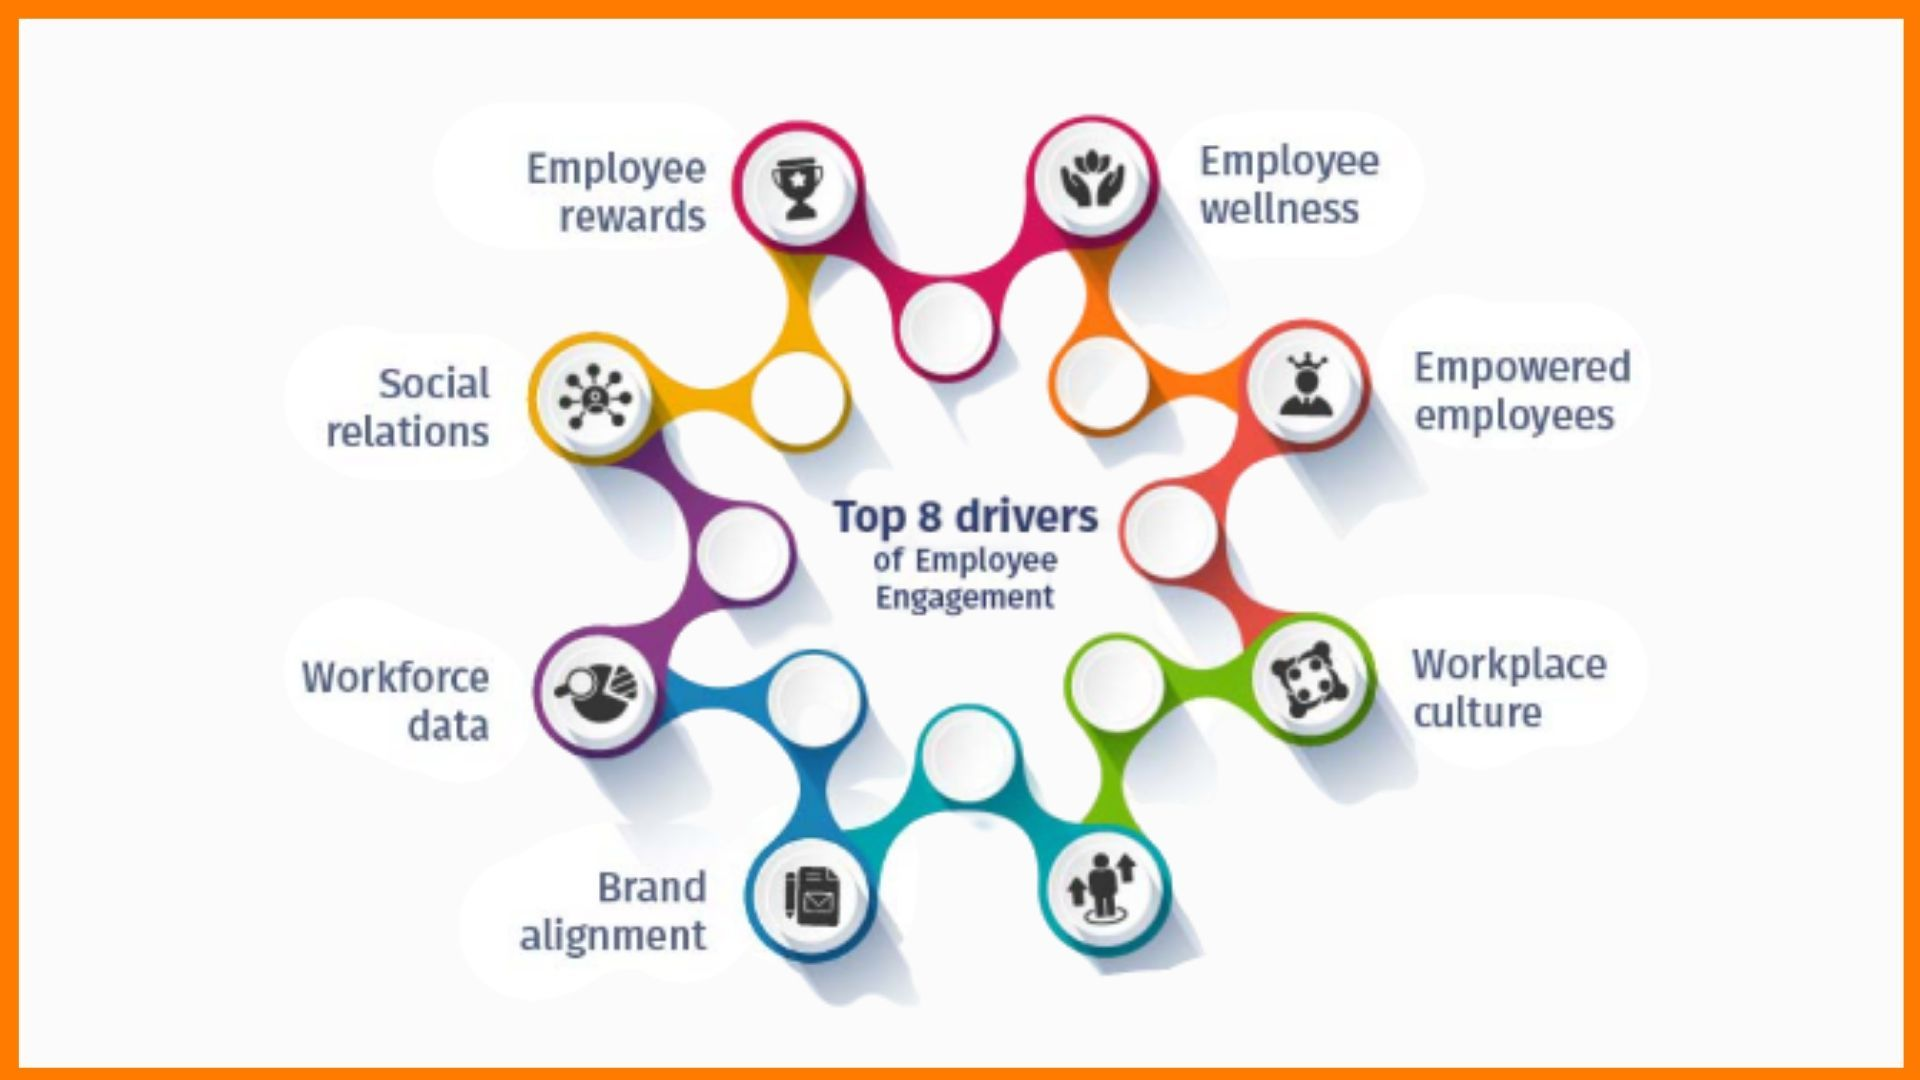 Top drivers of Employee Engagement